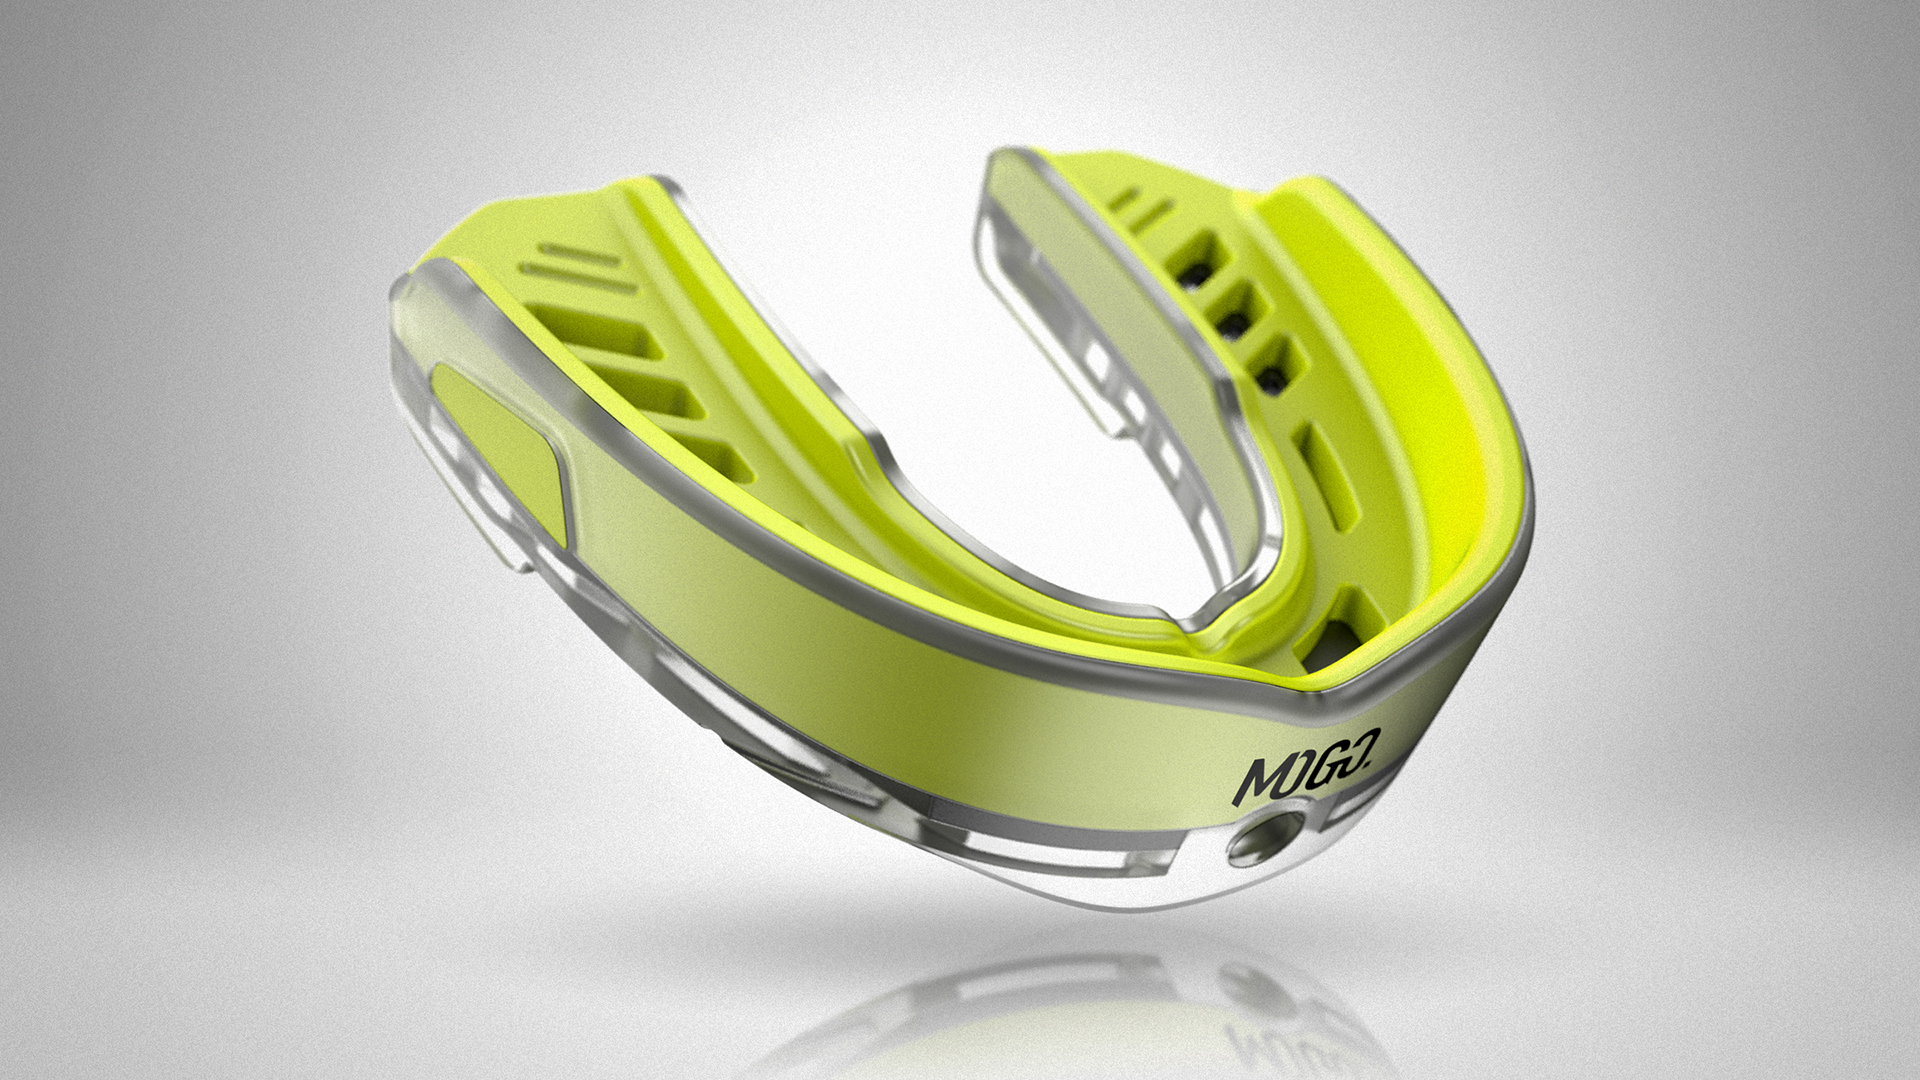 priority_designs_mogo_mouth_guard_product_design_and_development_002